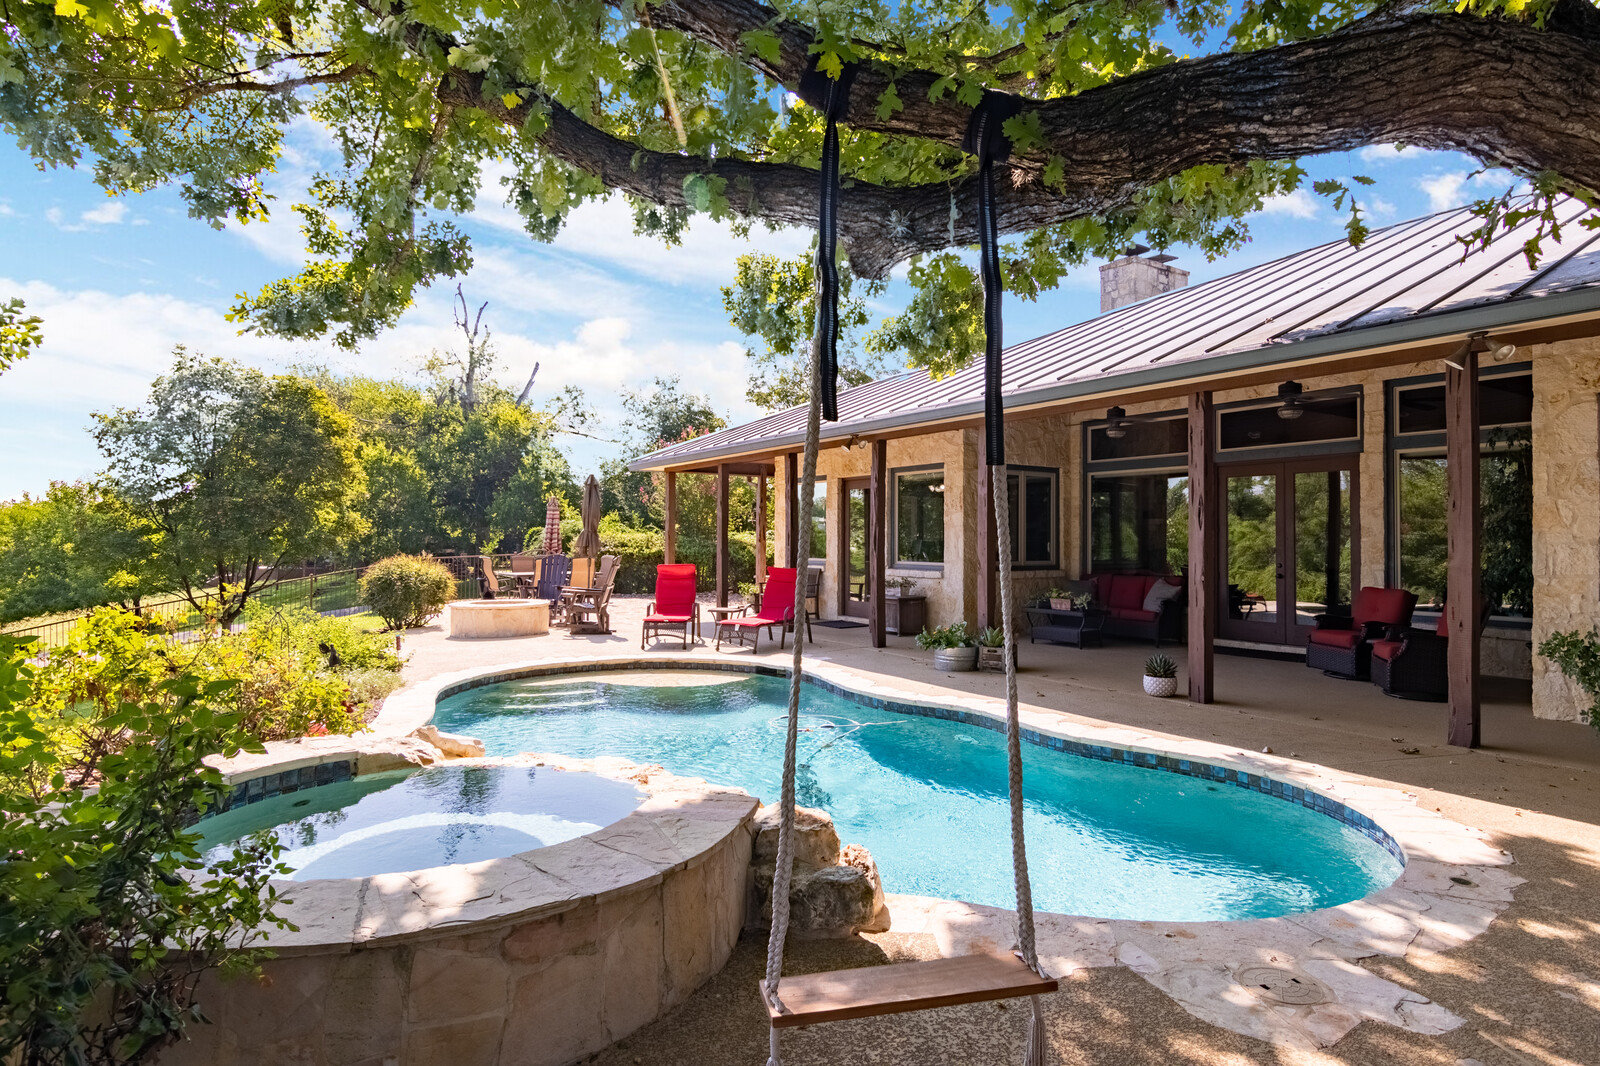 photo of pool and spa area of West Evergreen Retreat, Boerne, Texas